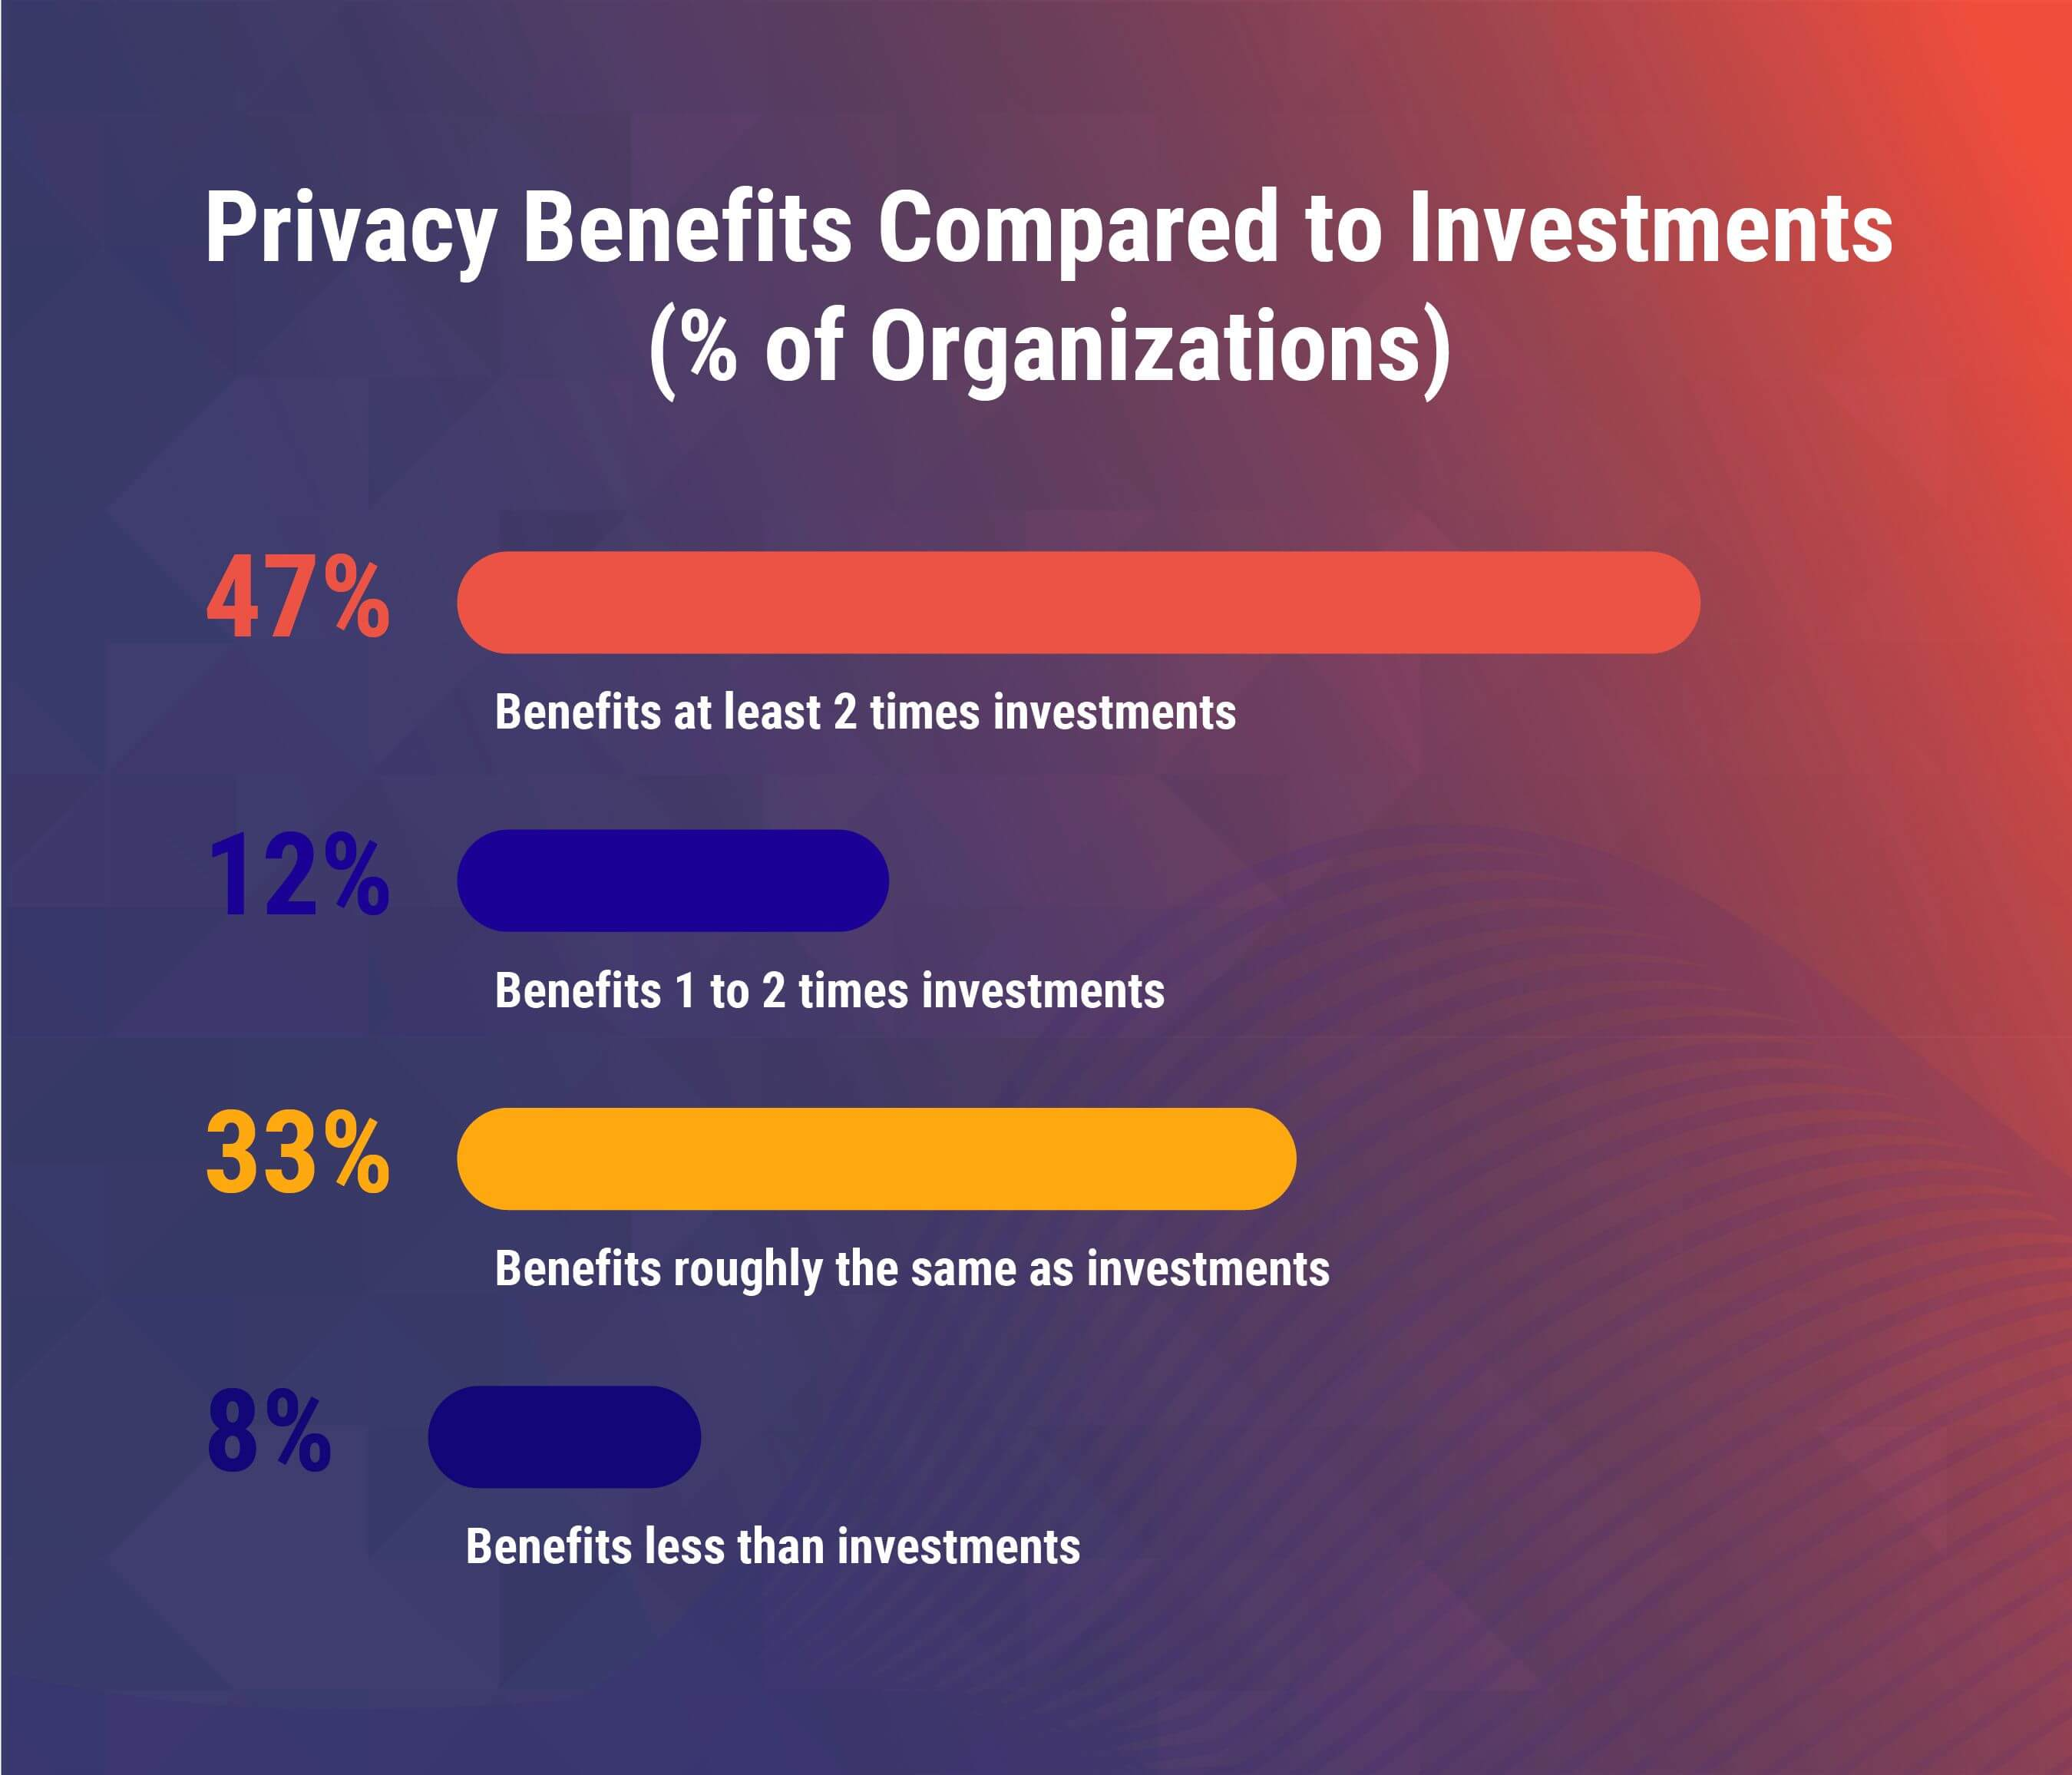 Privacy Benefits compared to investments on security